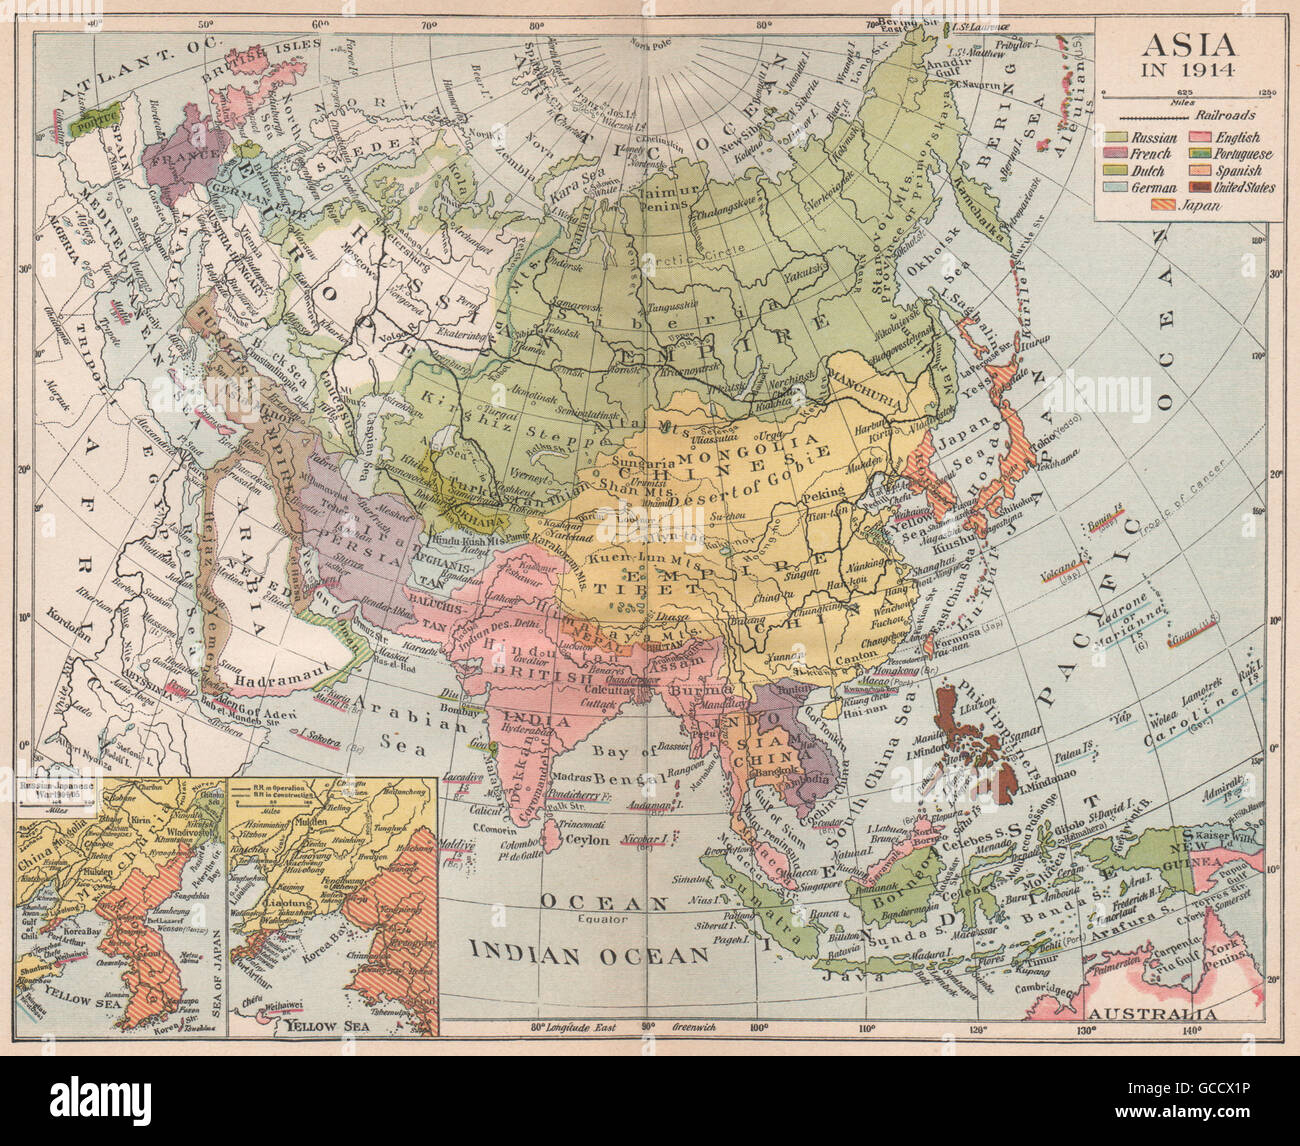 Colonial asia 1914 east indies c russian japanese war 190405 russian japanese war 190405 1917 old map gumiabroncs Image collections